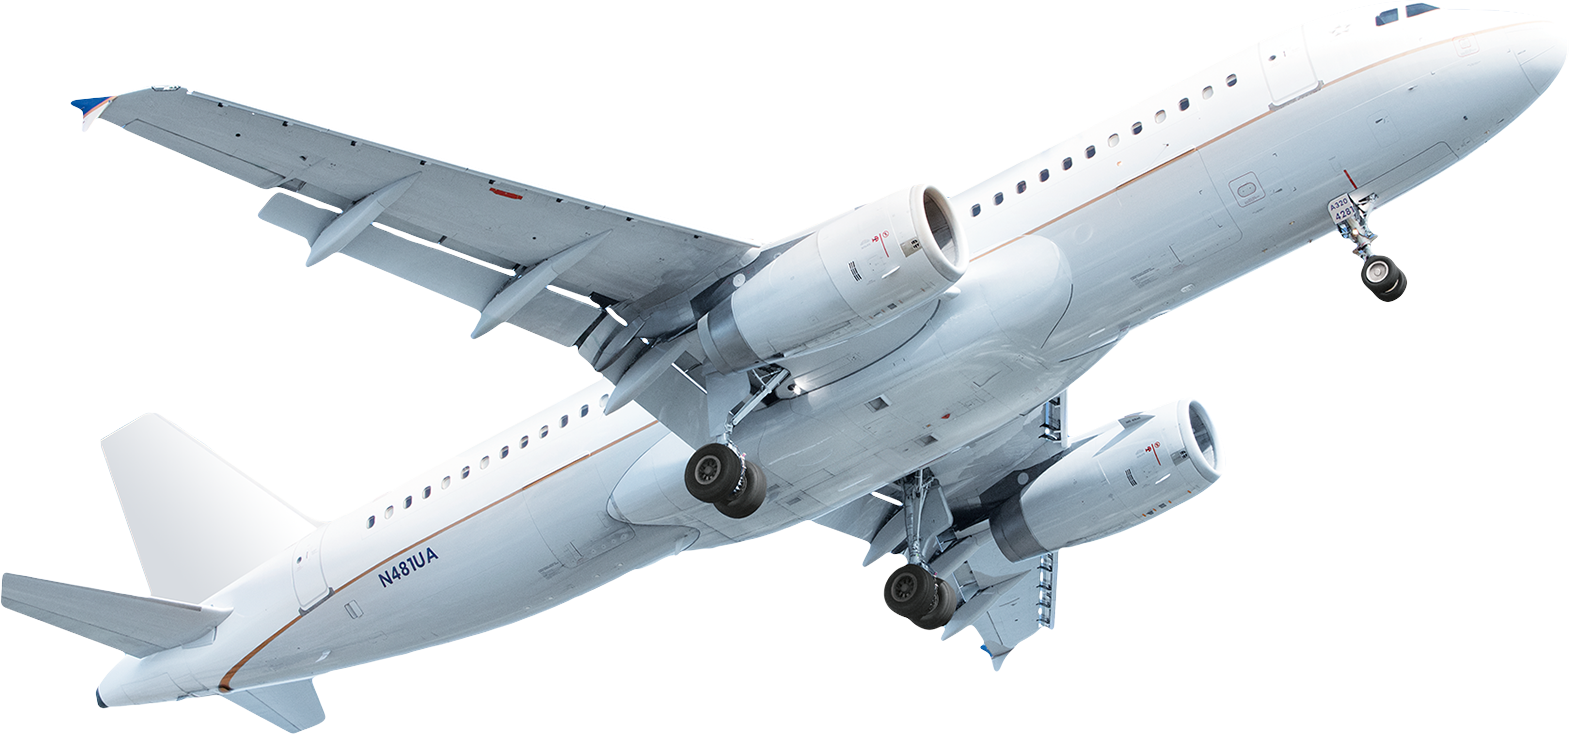 Airplane Hd Transparent Background Png image #27944